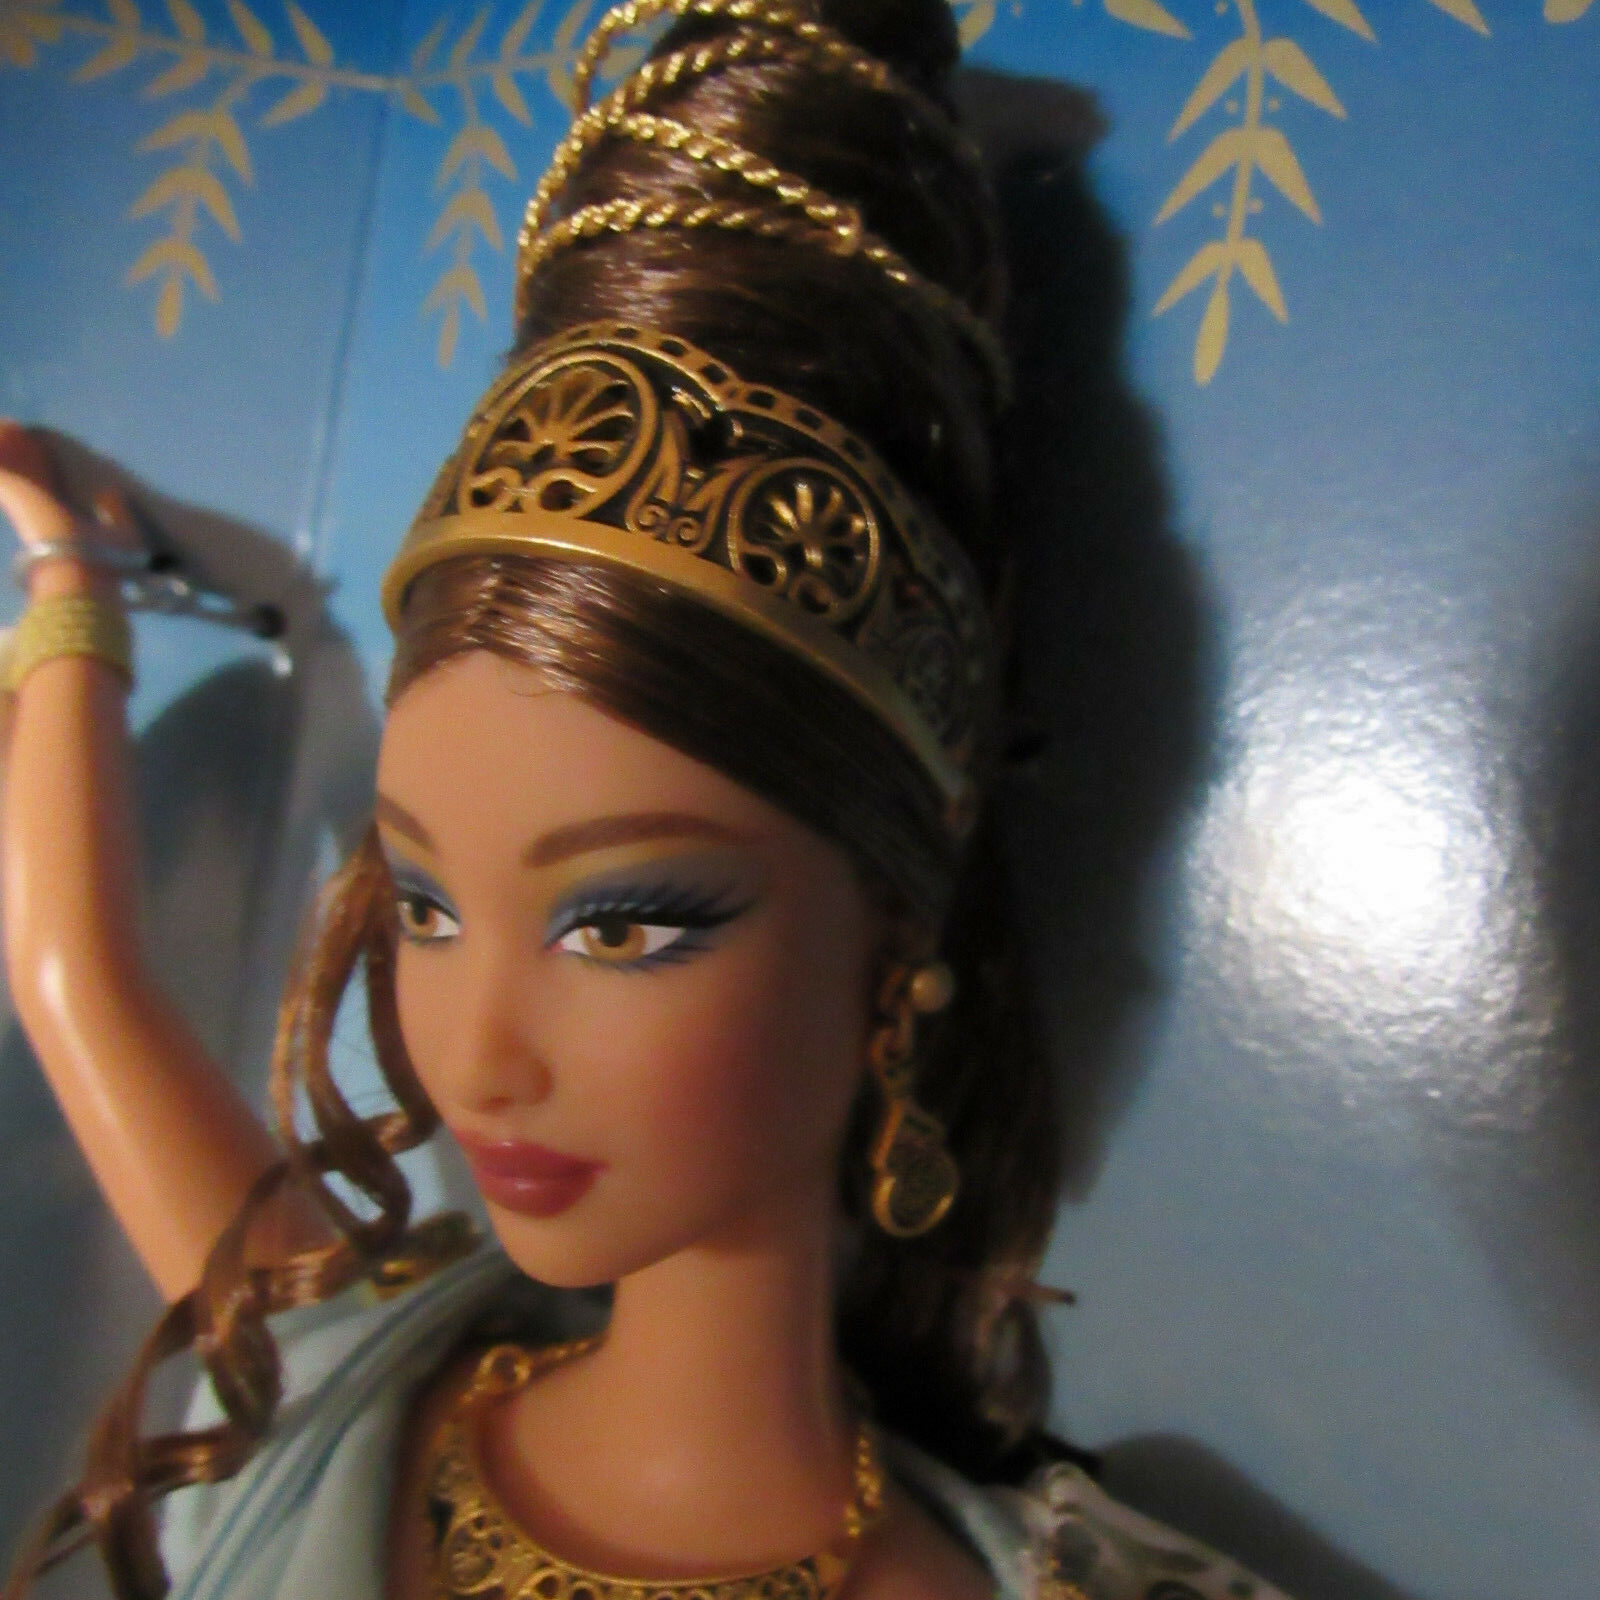 VHTF NRFB Goddess of Beauty Barbie Doll Classical Greek LTD ED 2000 image 2